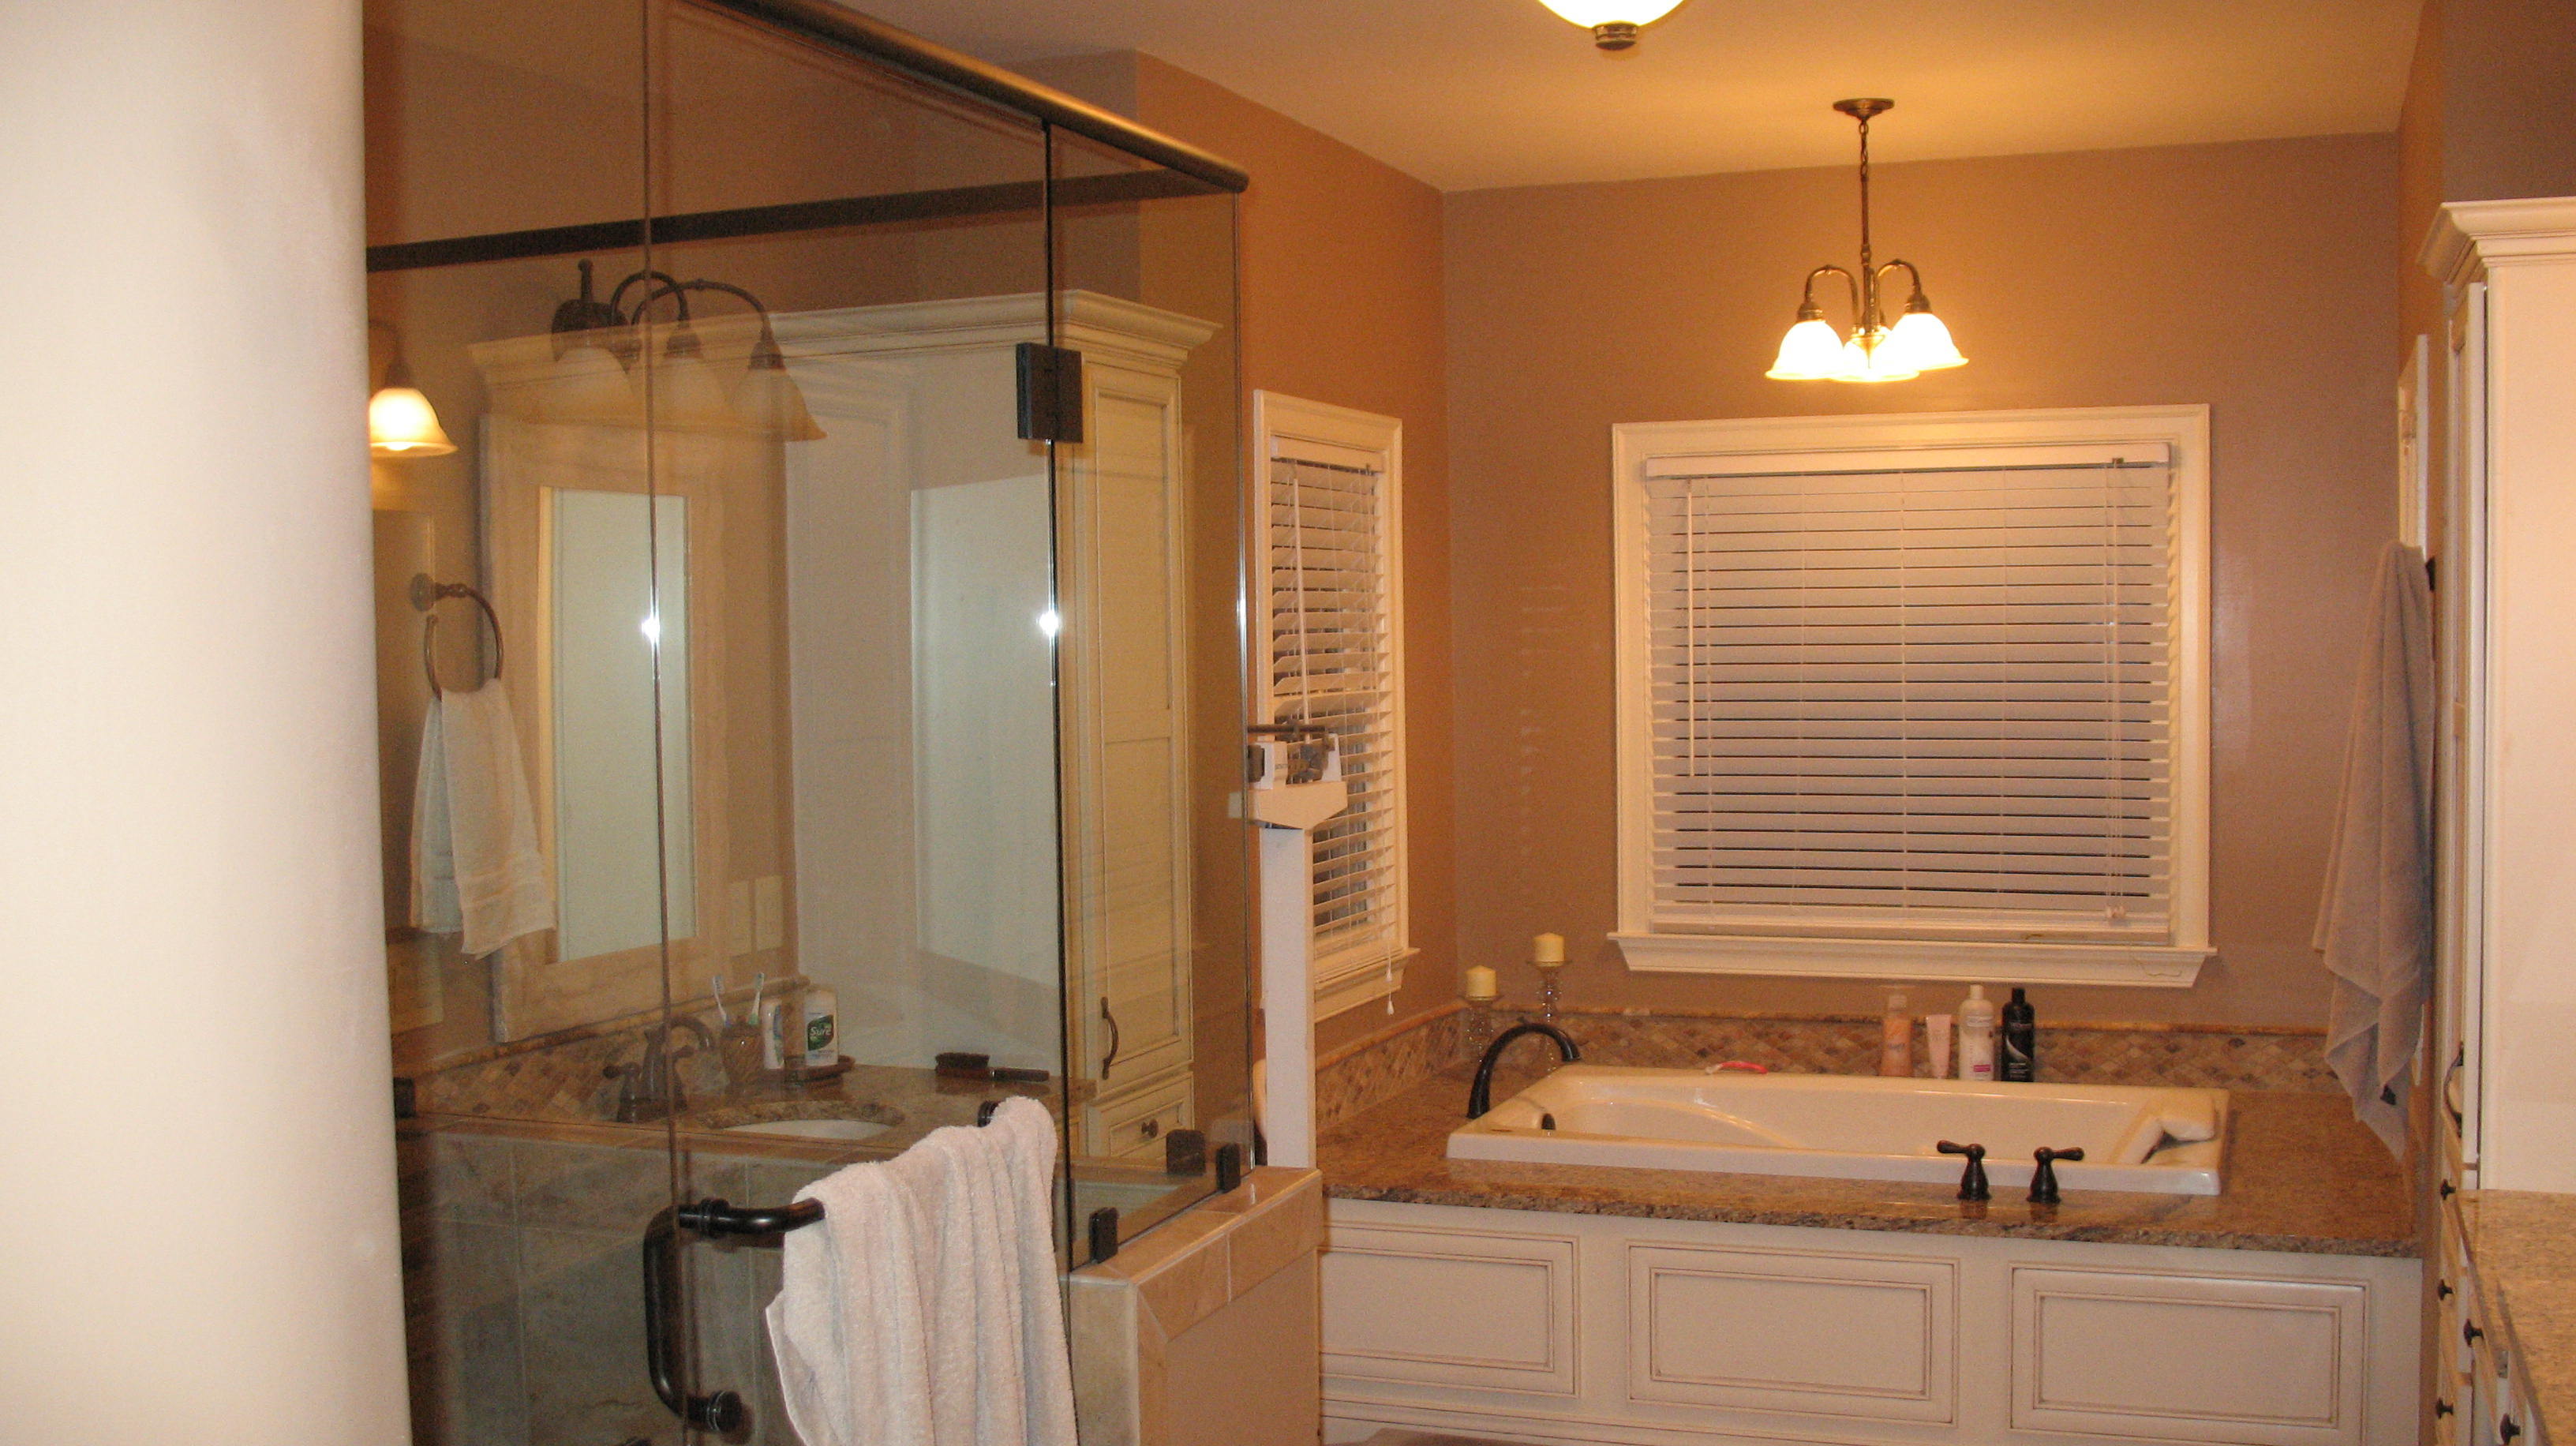 Bathroom Remodel No Tub bathroom remodel checklist. trendy best images about bathroom